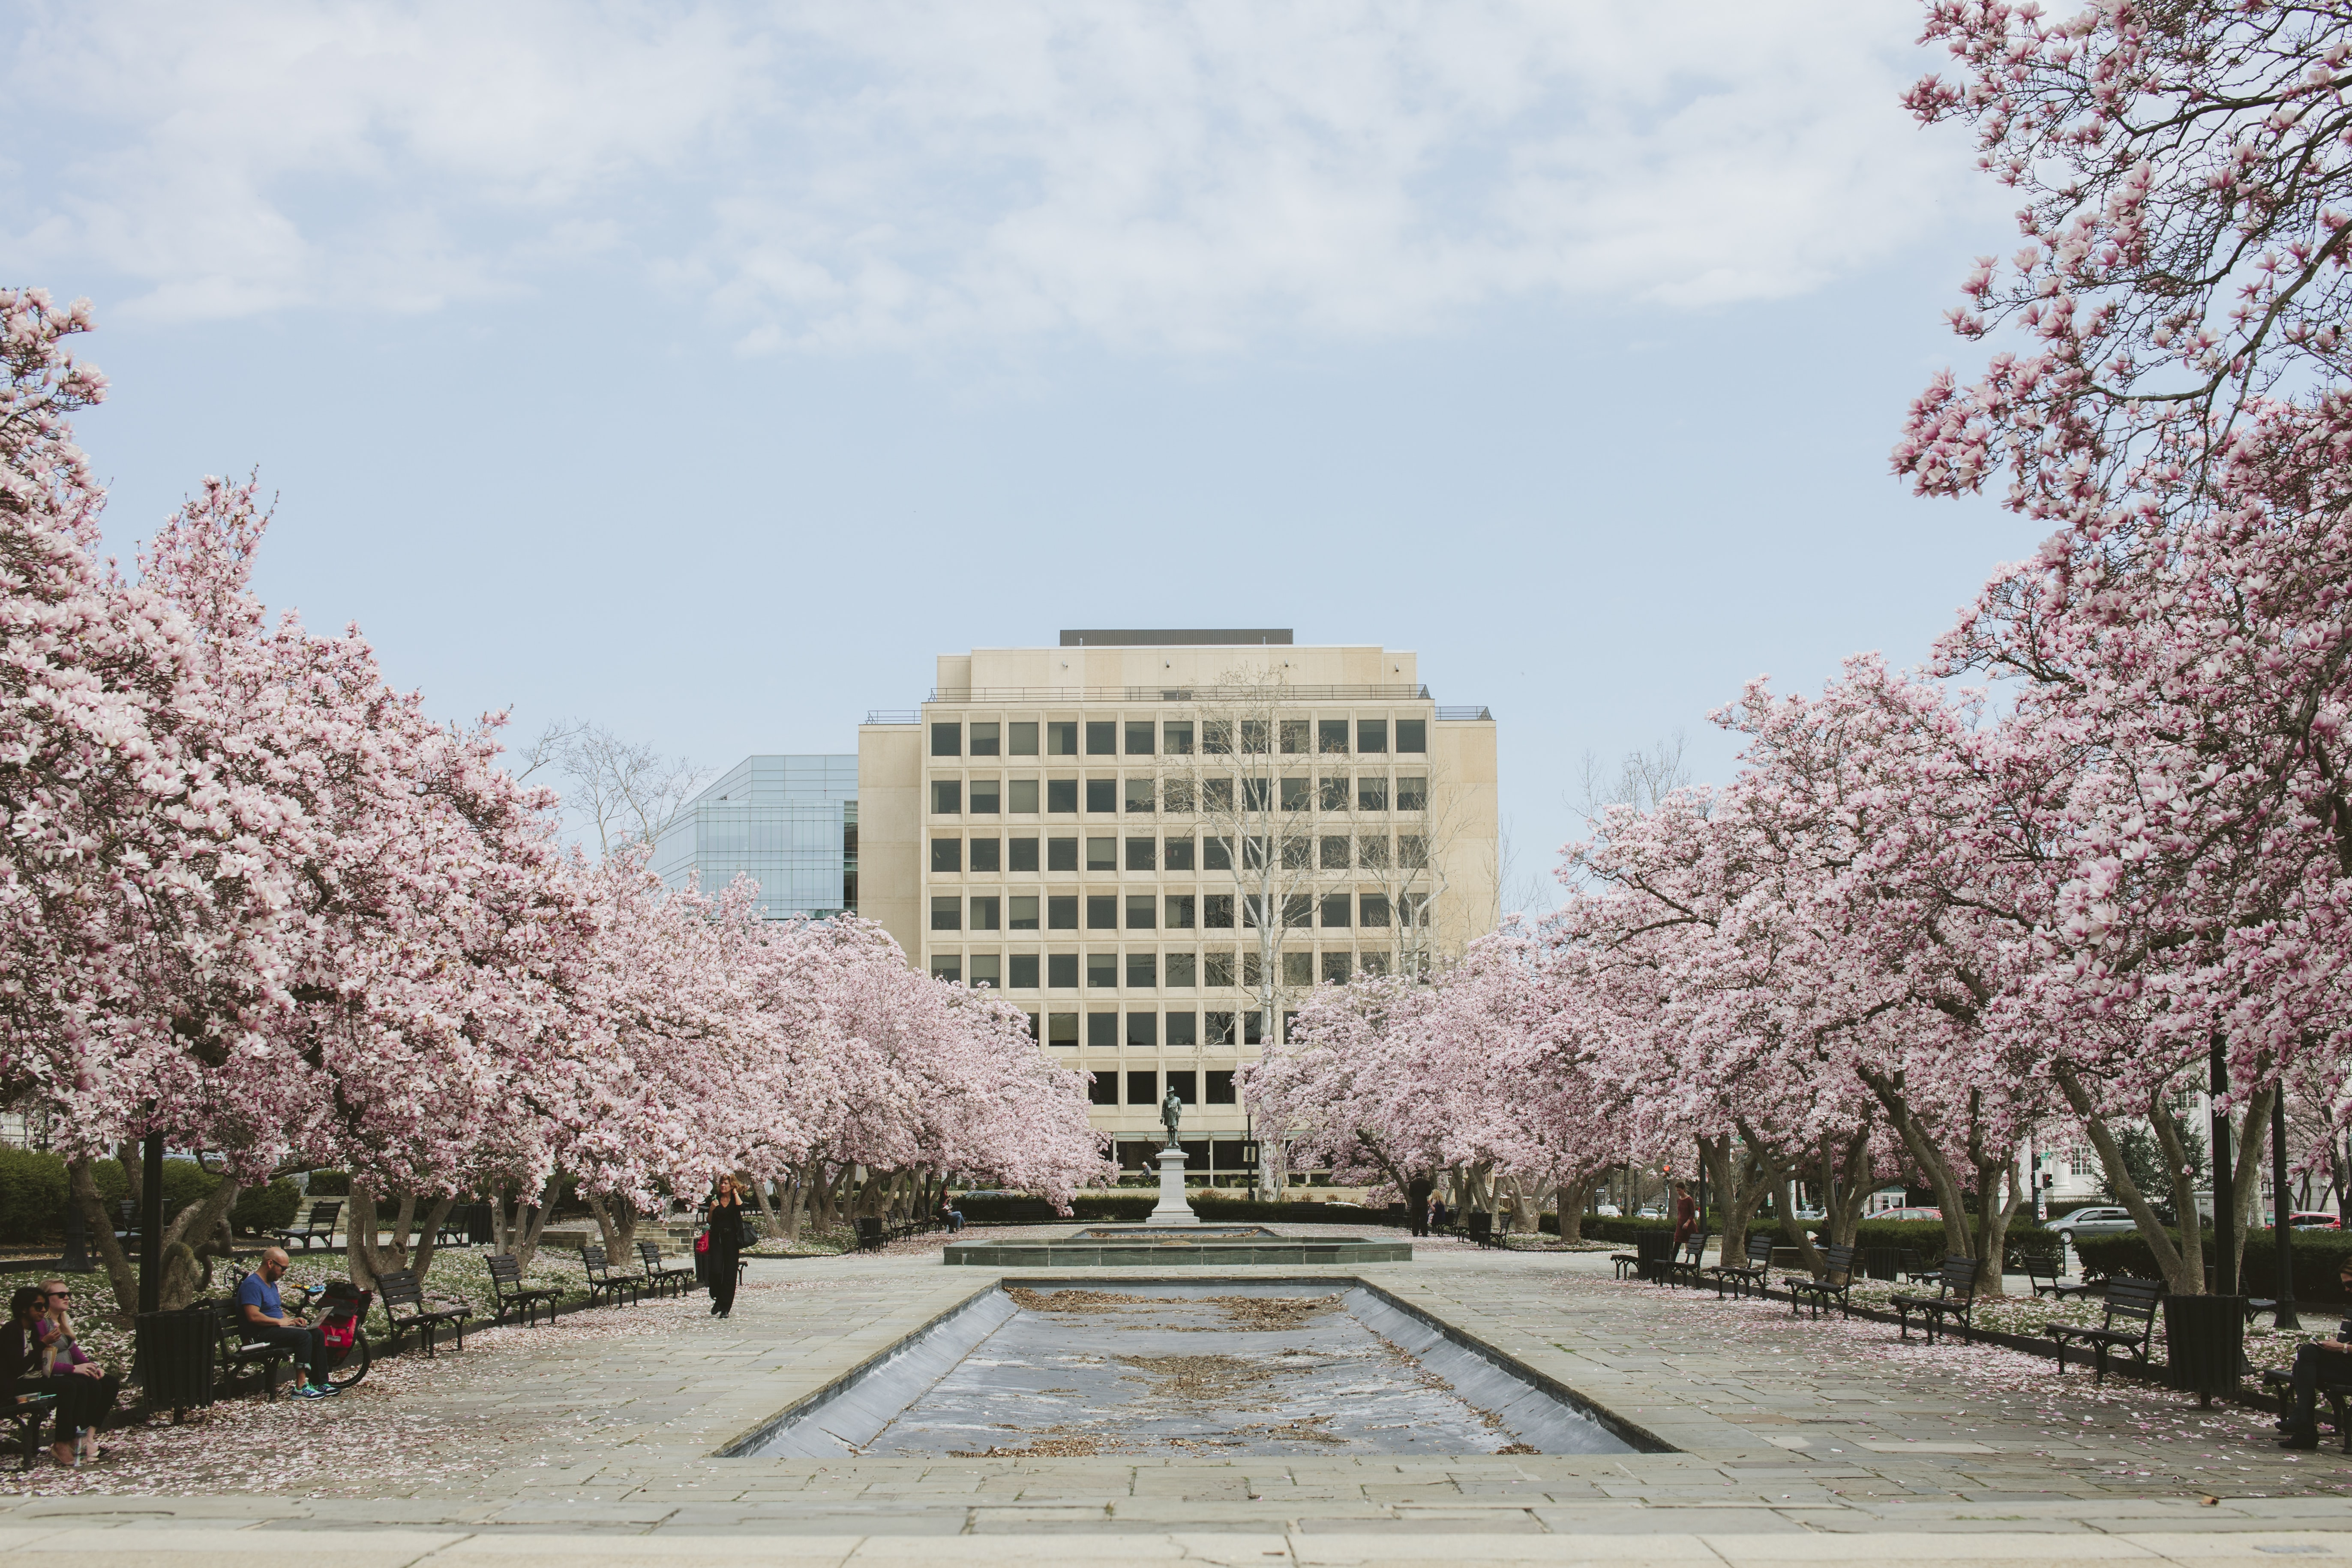 Cherry blossom trees lining public space with white building and blue sky in Spring